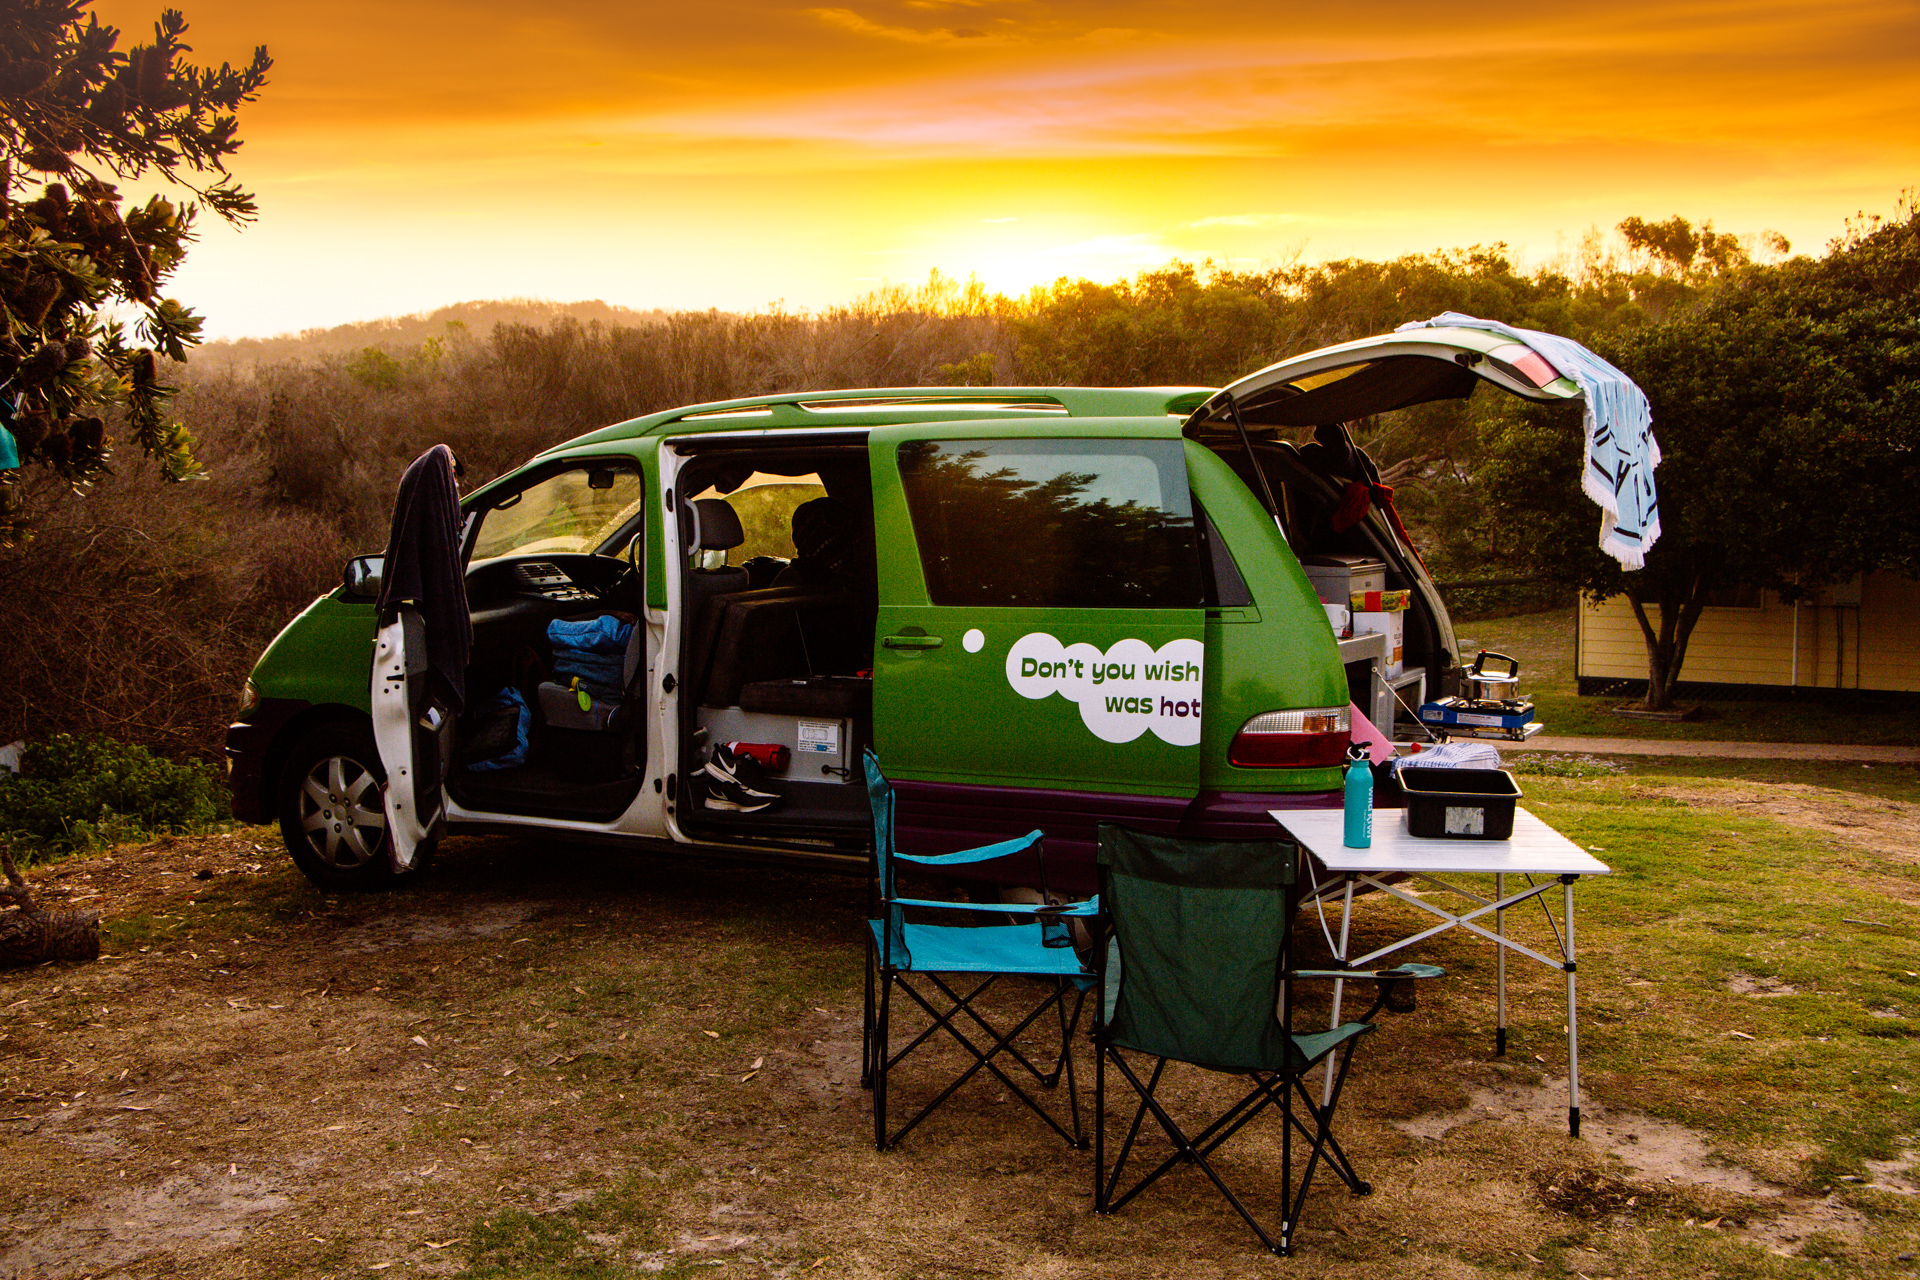 JUCY Campervan in the sunset of Australia